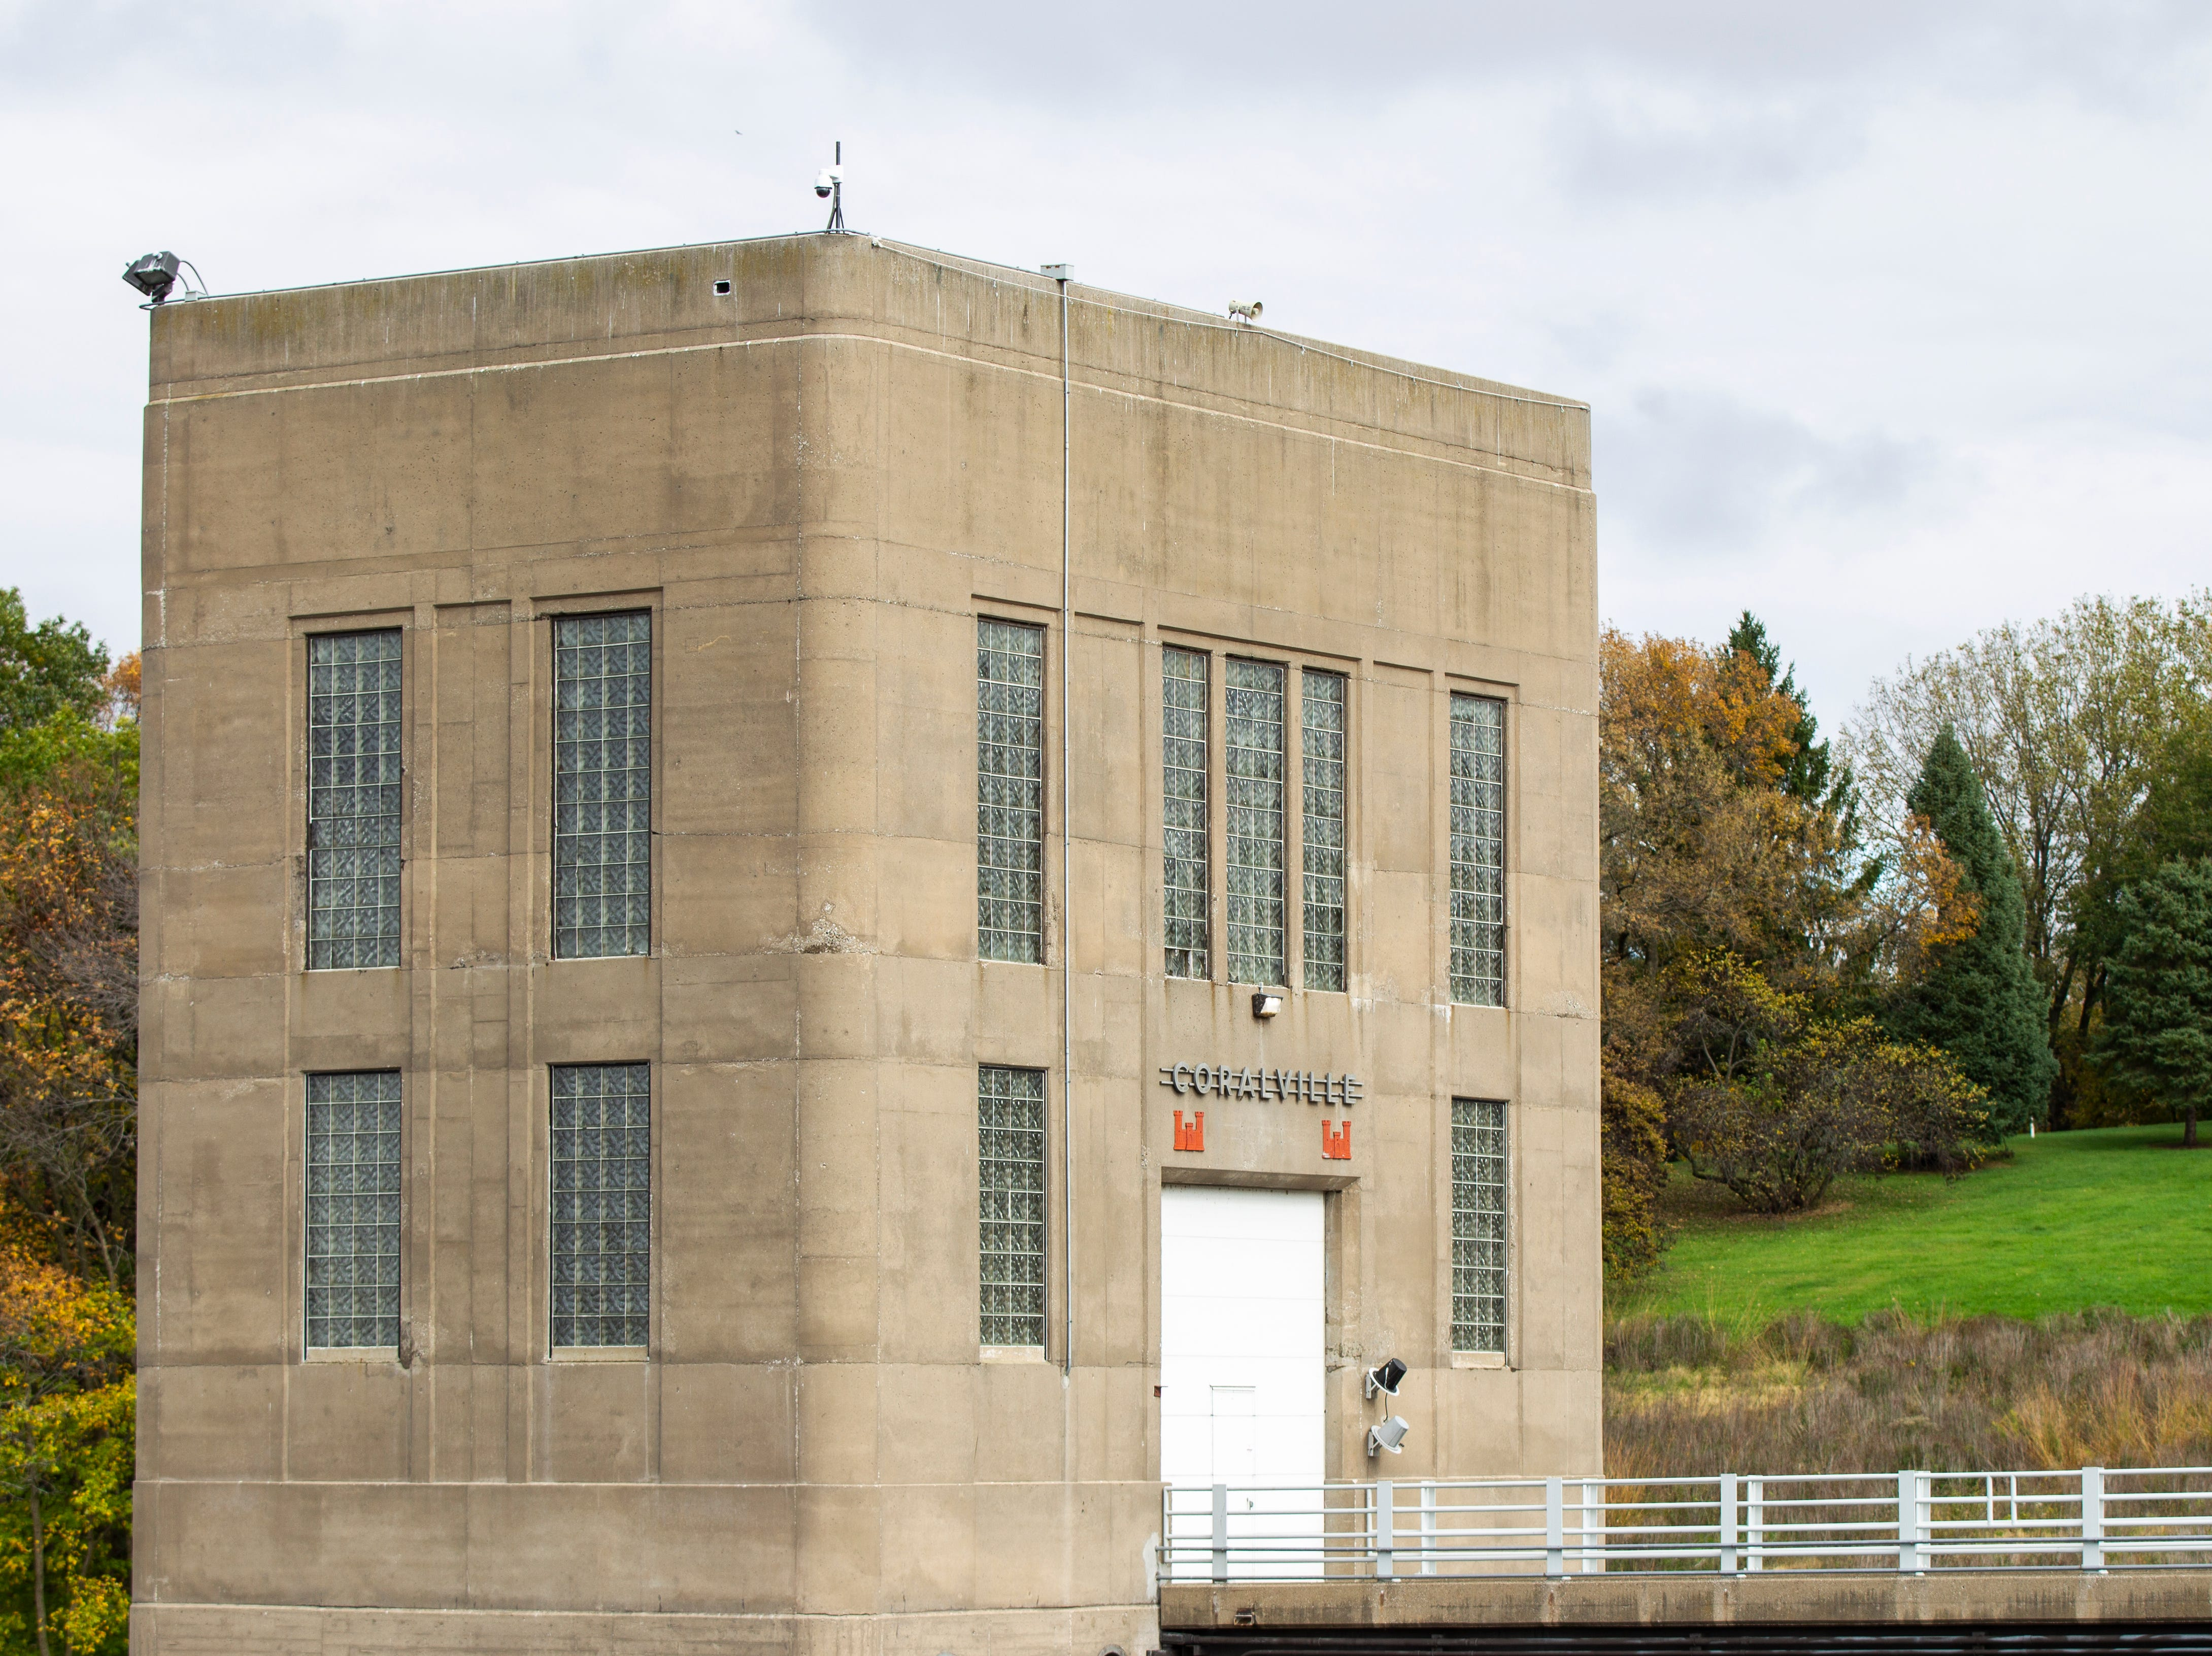 A Corps of Engineers control tower is seen on Wednesday, Oct. 10, 2018, at the Coralville Lake dam.